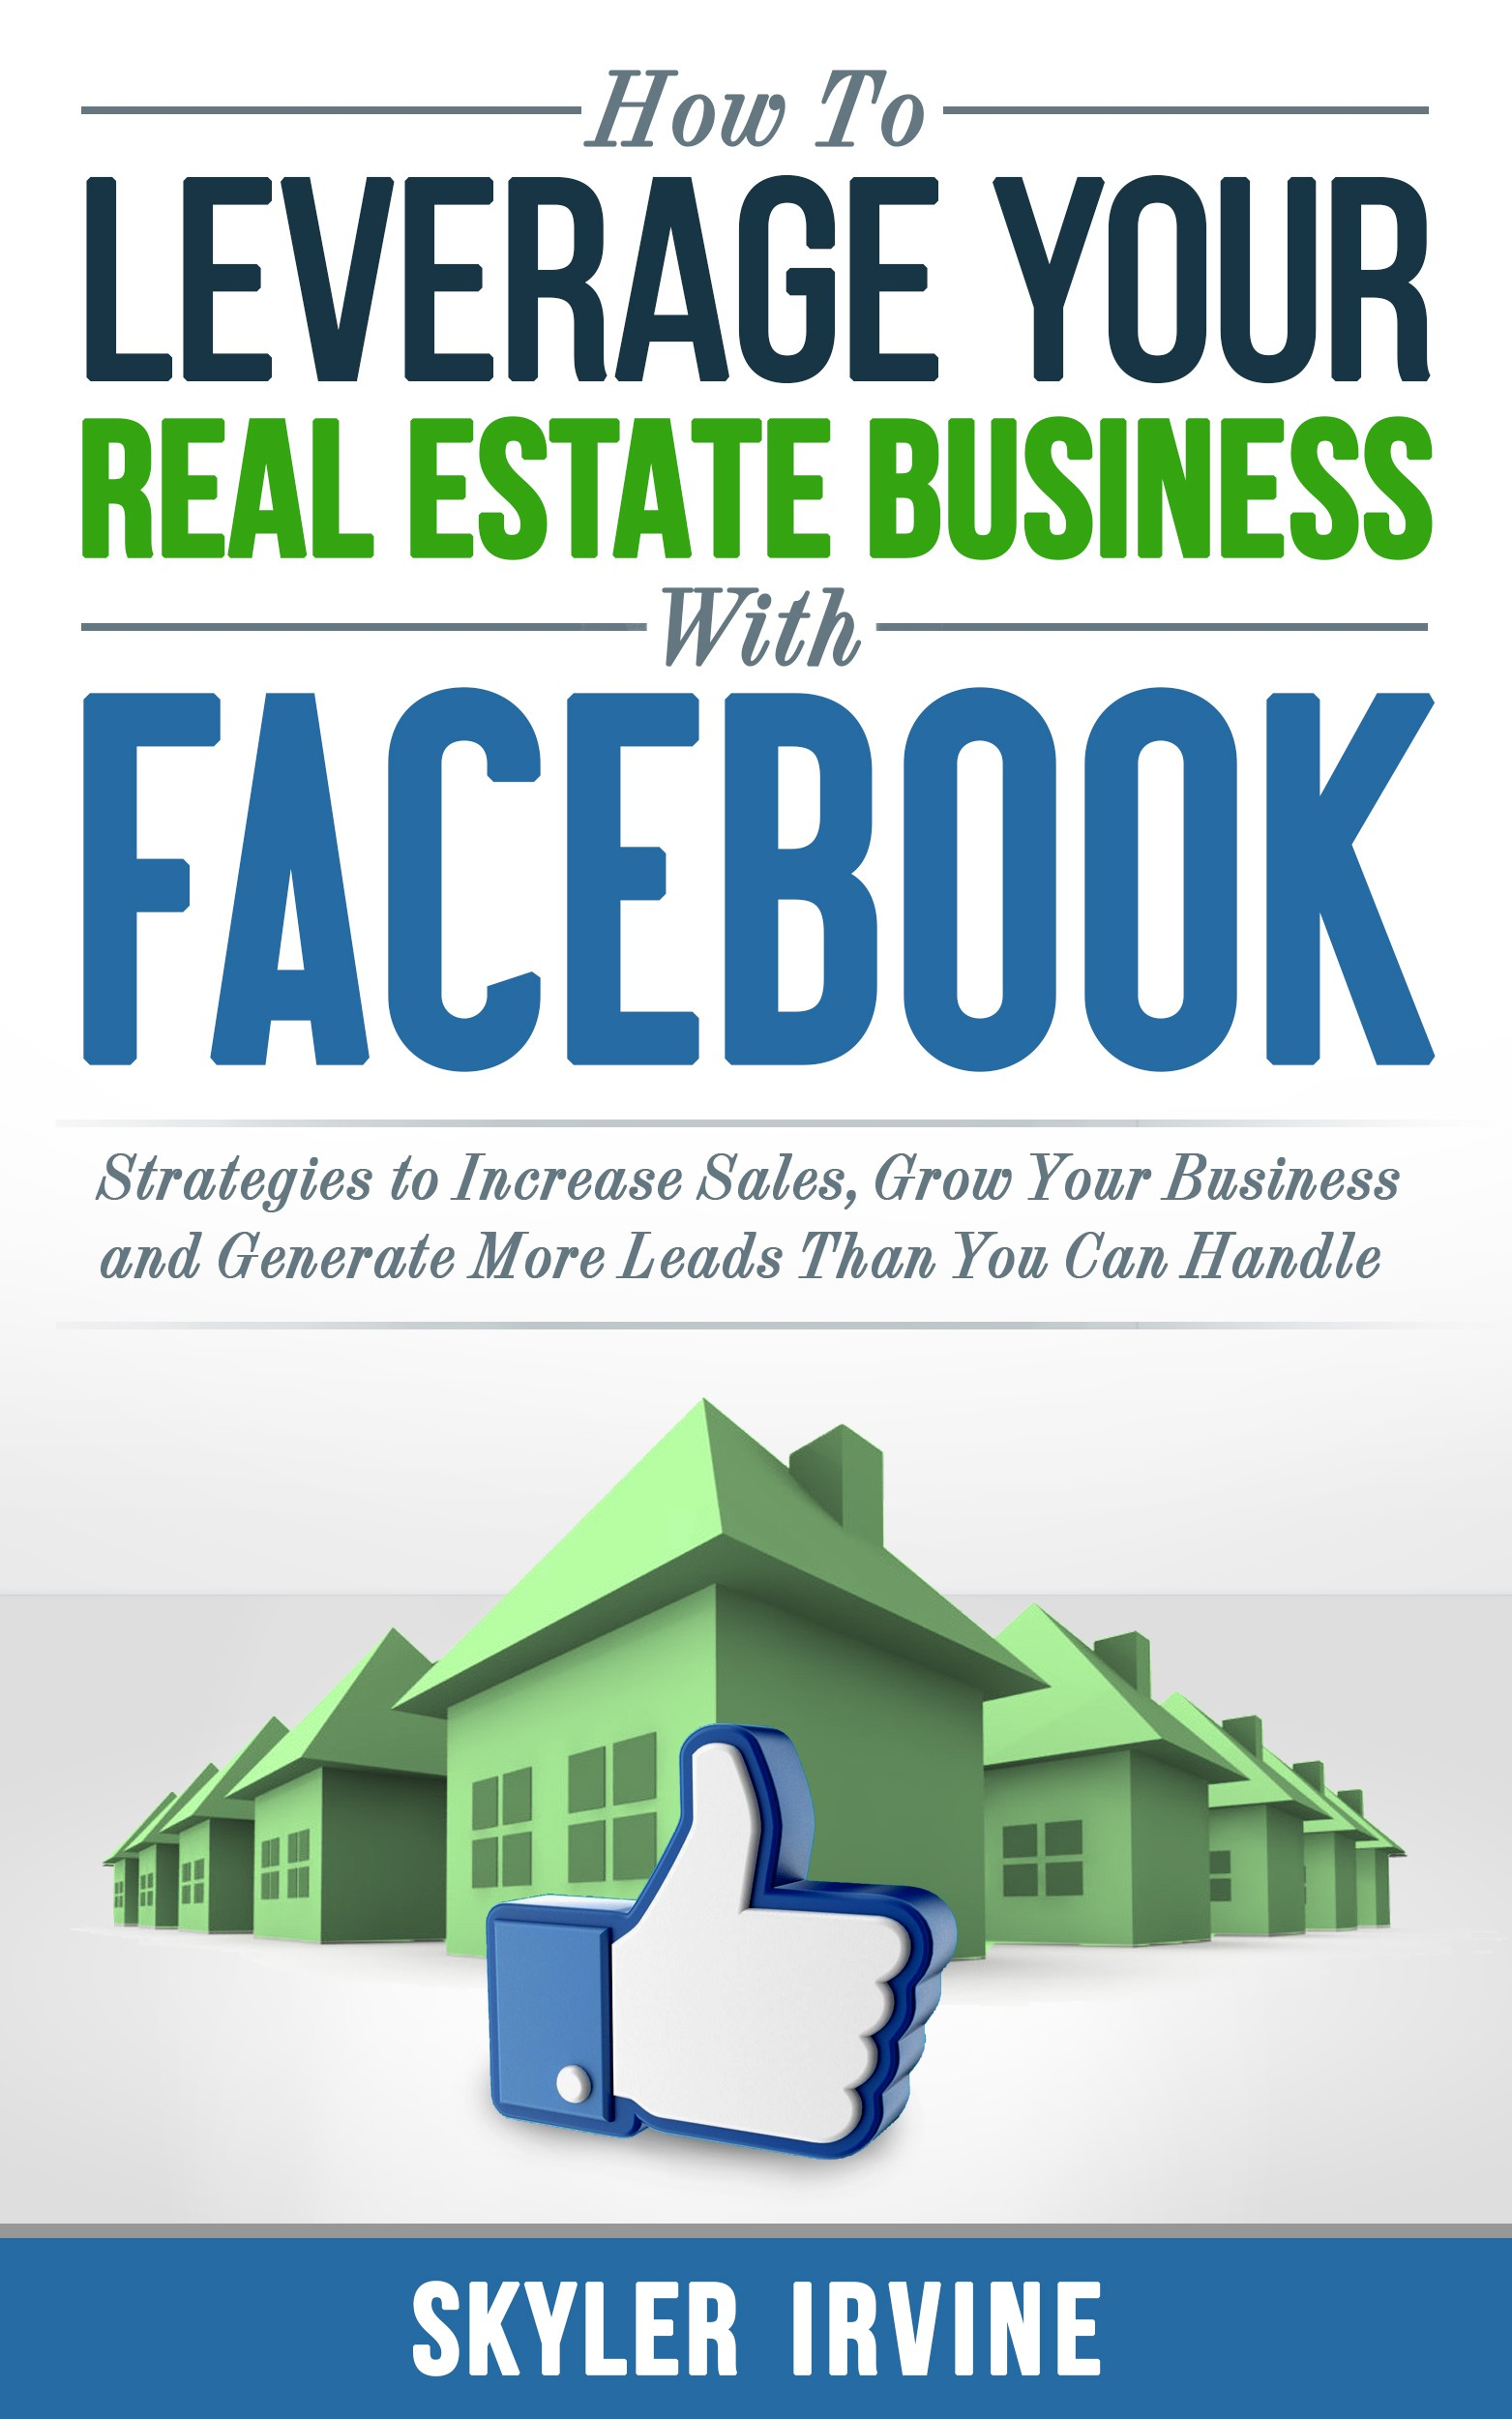 How To Leverage Your Real Estate Business With Facebook